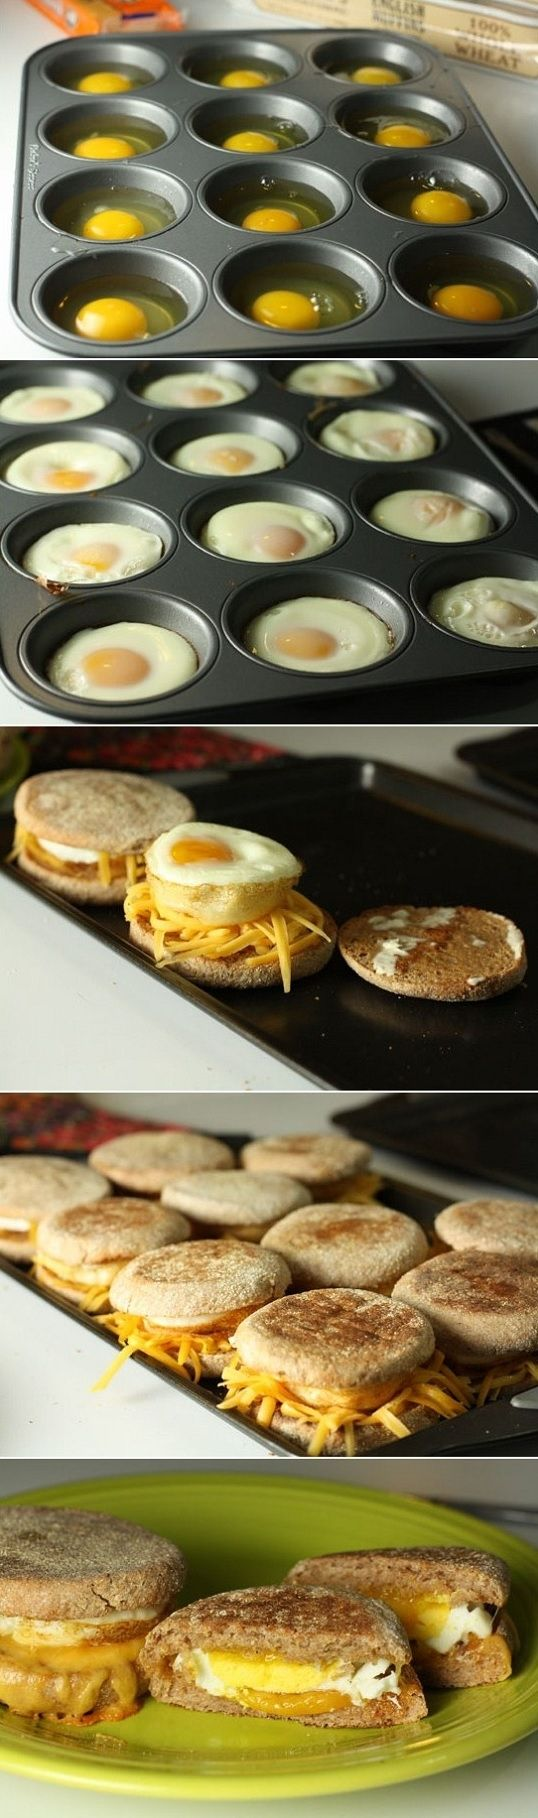 Breakfast Sandwiches                                                                                                                            More                                                                                                                                                                                 More